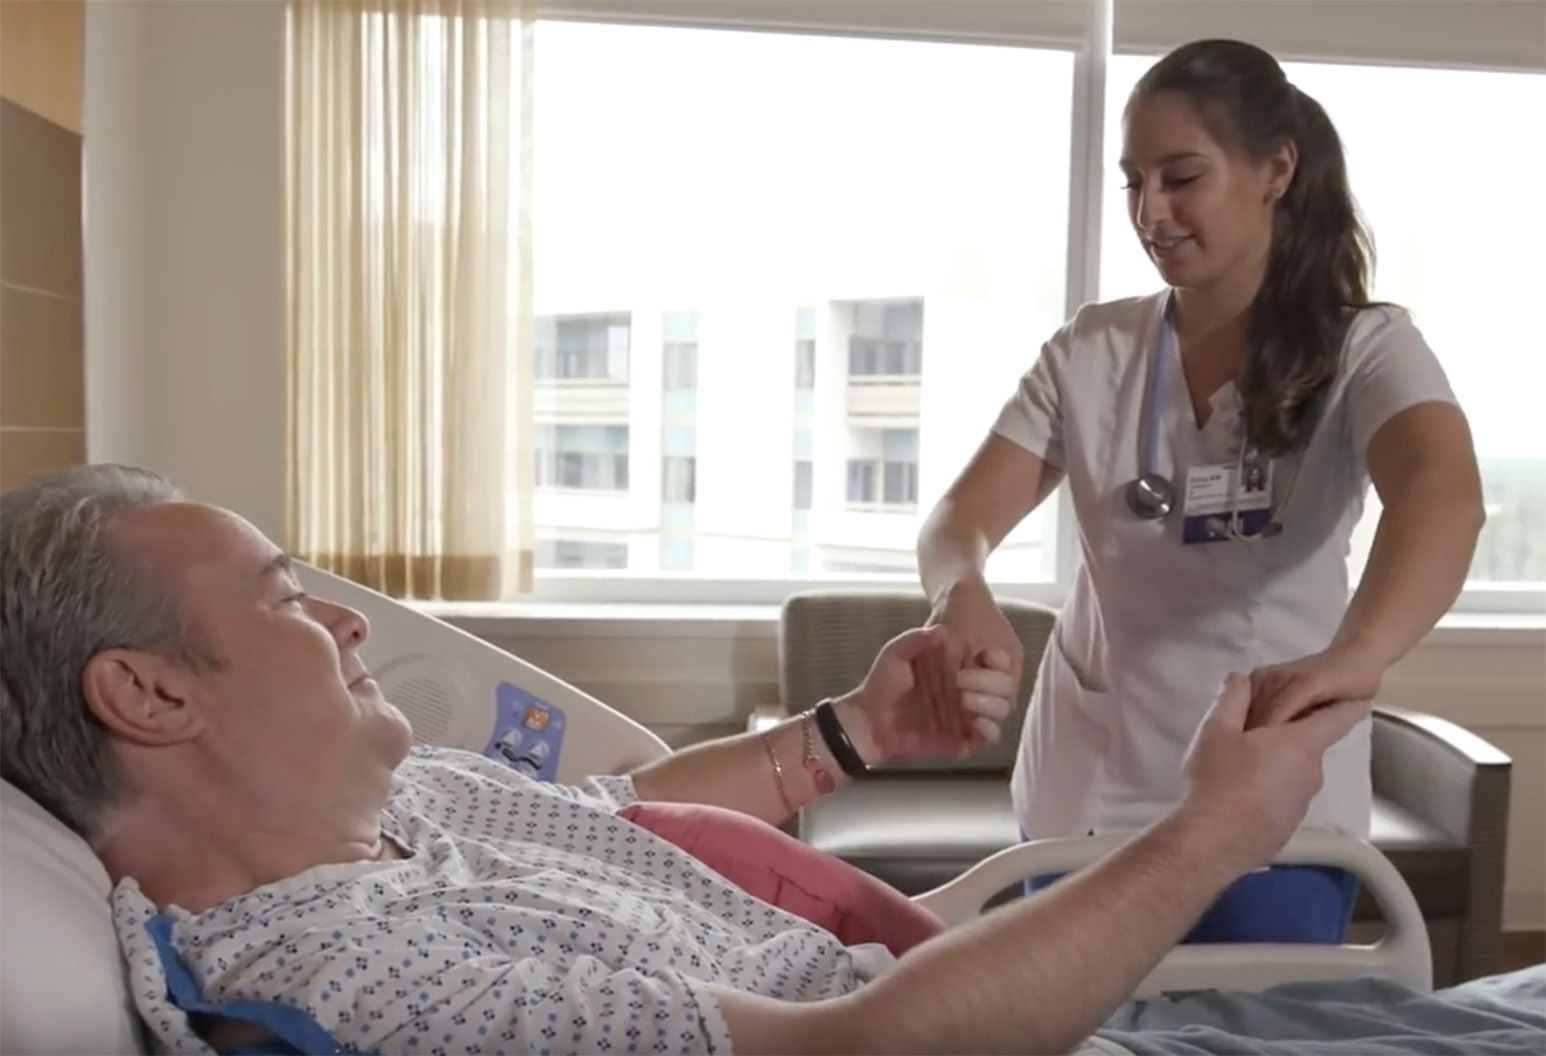 A smiling female nurse holds a male patient's hands as he reclines in a well-lit hospital room.